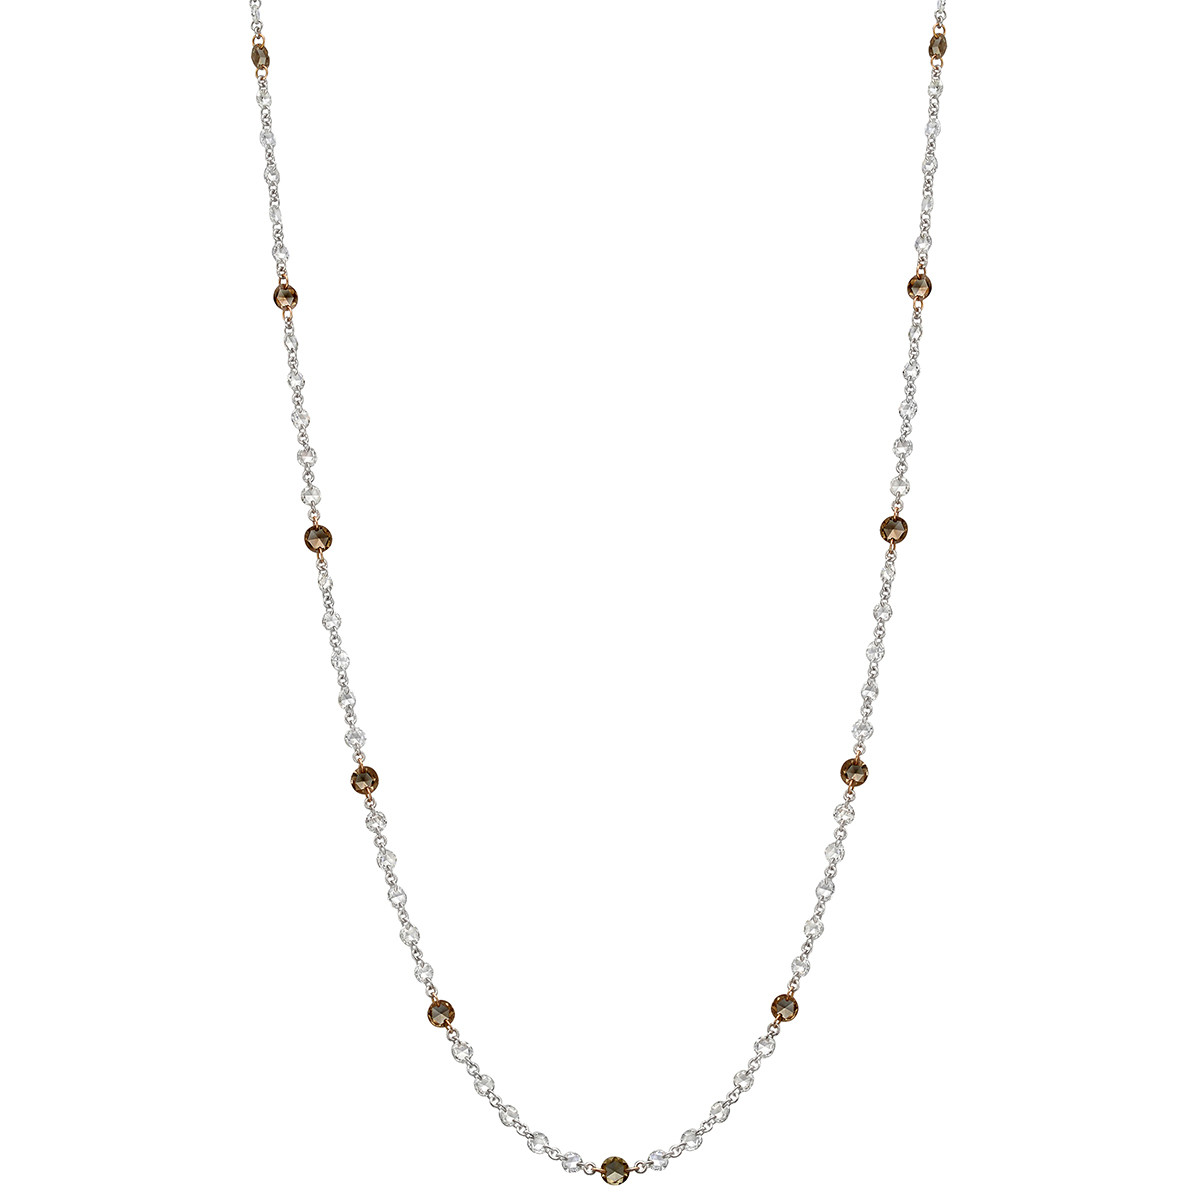 White & Brown Diamond Chain Necklace